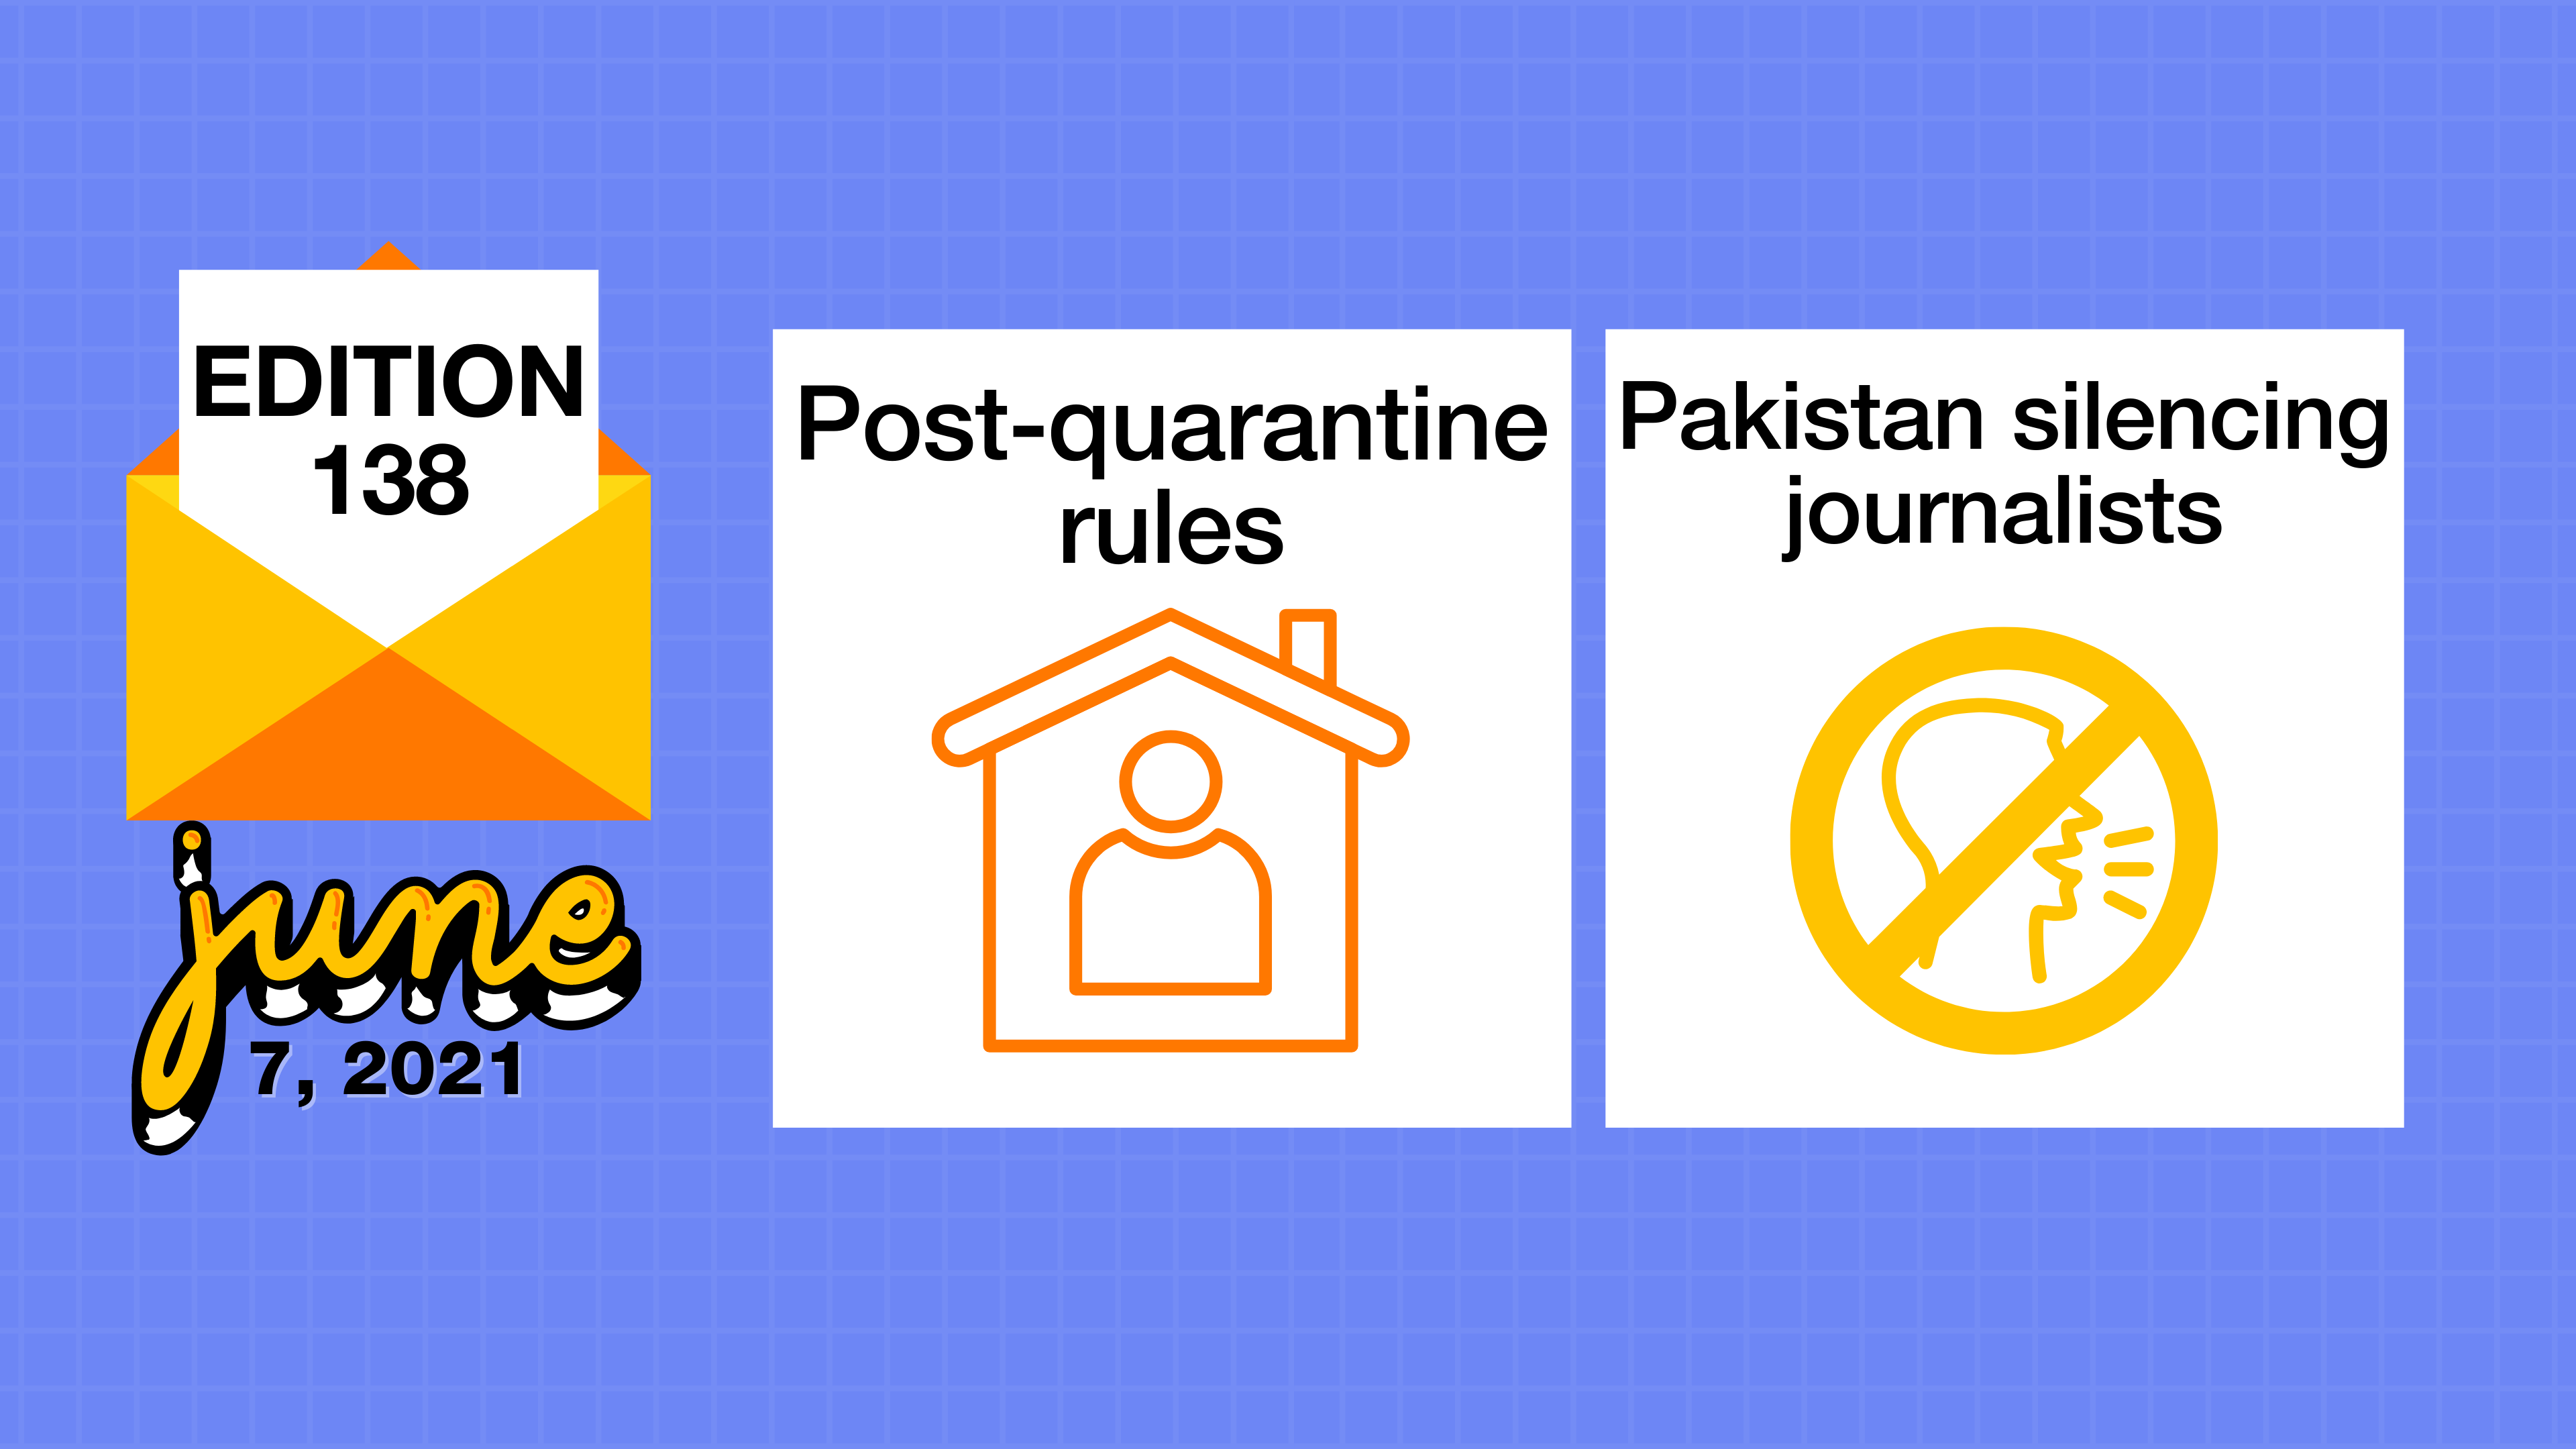 Post-quarantine rules and Pakistan silencing journalists